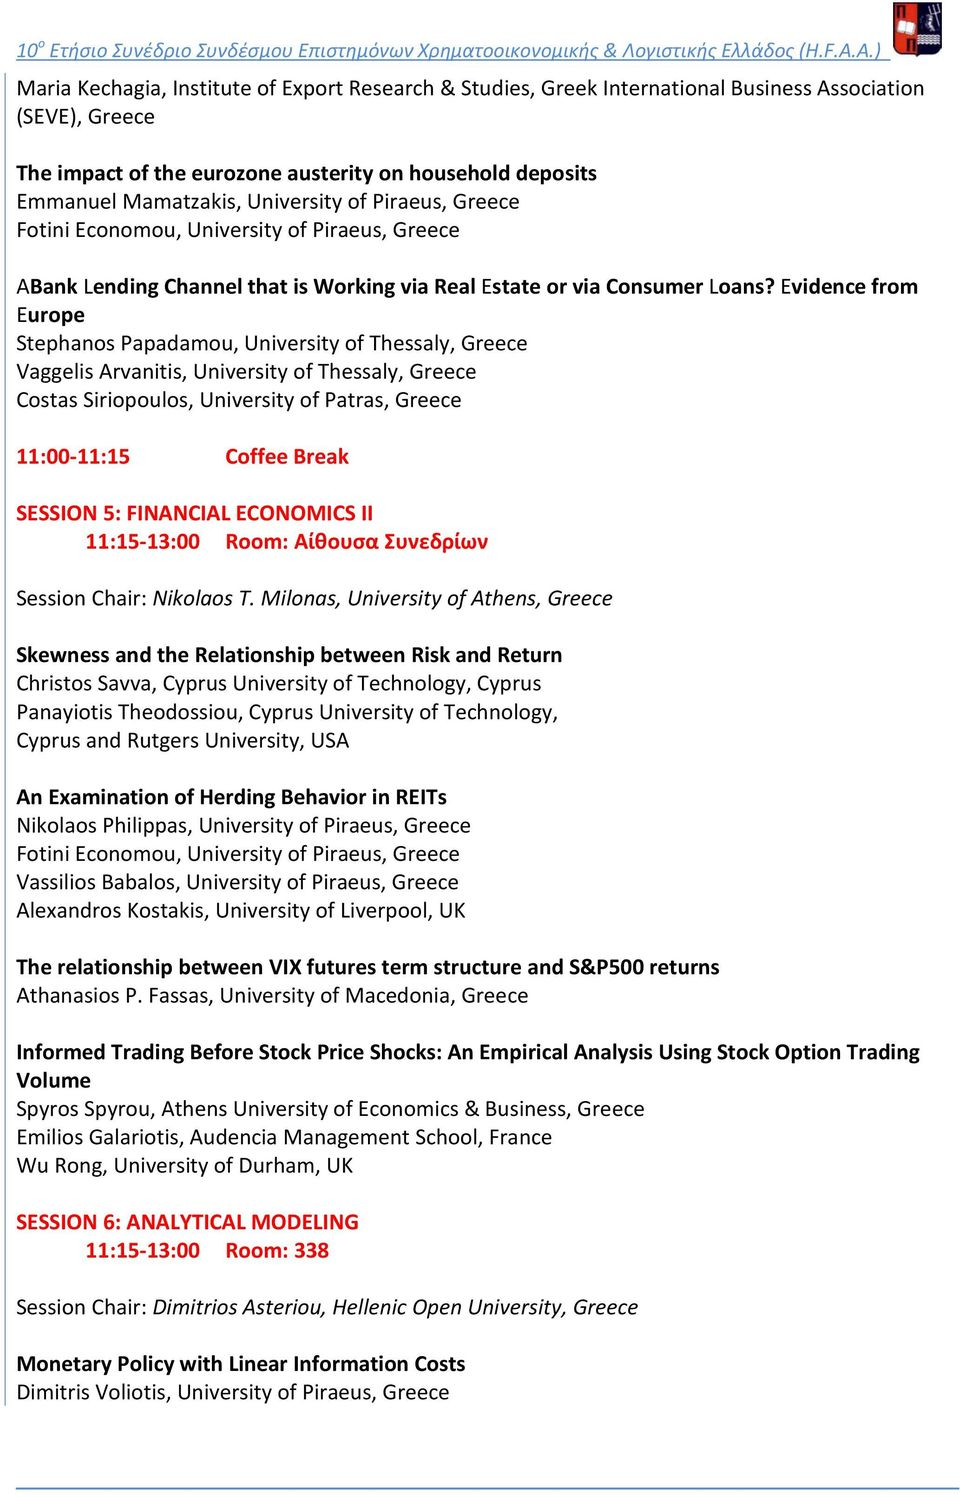 Evidence from Europe Stephanos Papadamou, University of Thessaly, Greece Vaggelis Arvanitis, University of Thessaly, Greece Costas Siriopoulos, University of Patras, Greece 11:00-11:15 Coffee Break